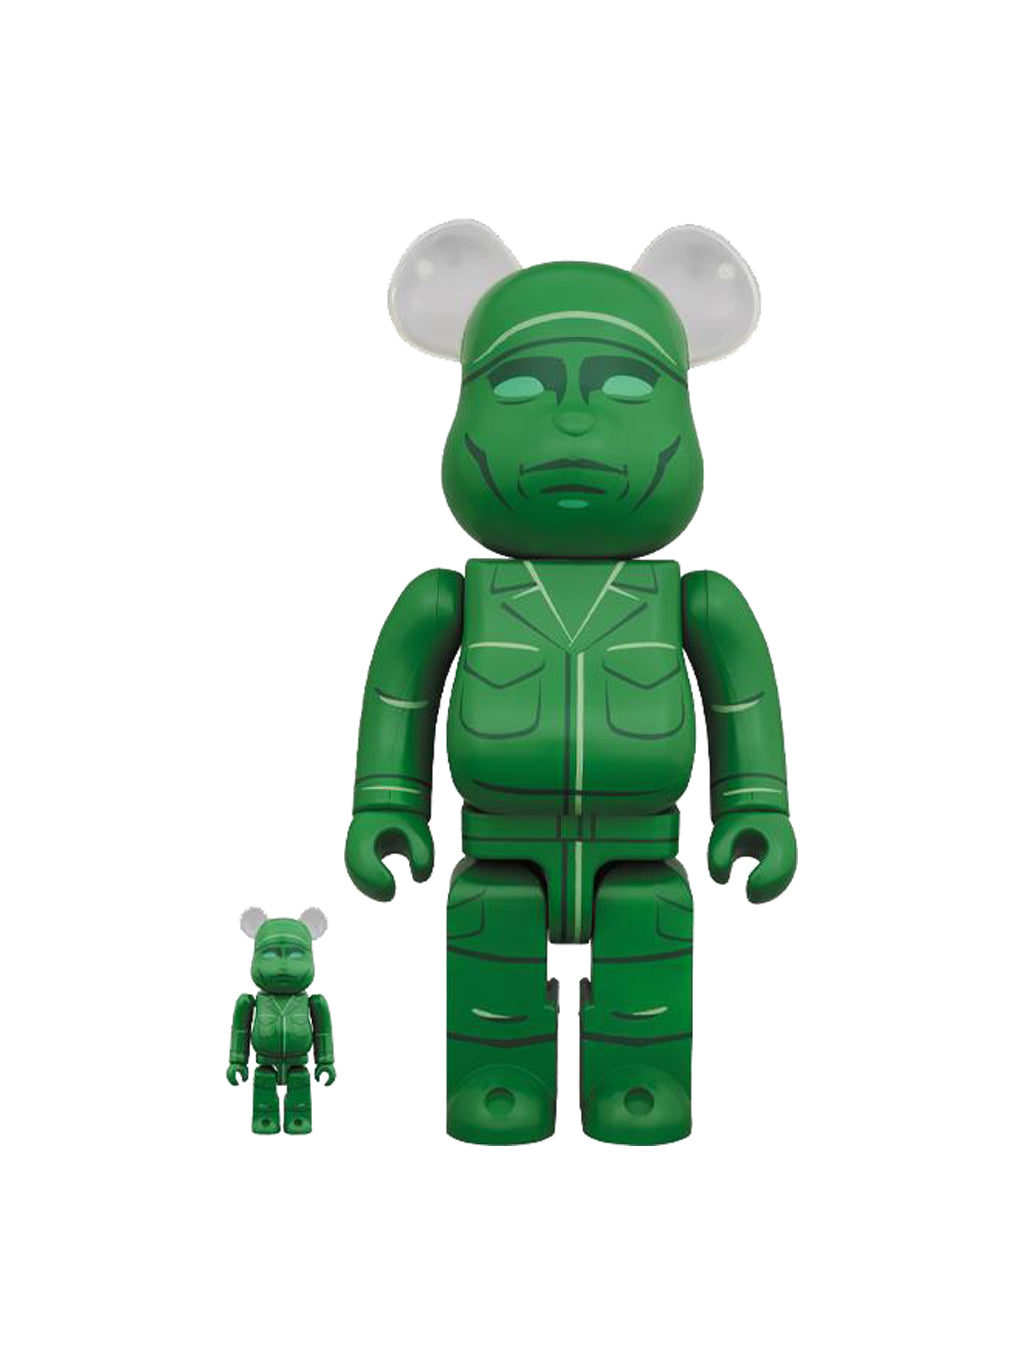 Green Medicom Japan Army Men Toy